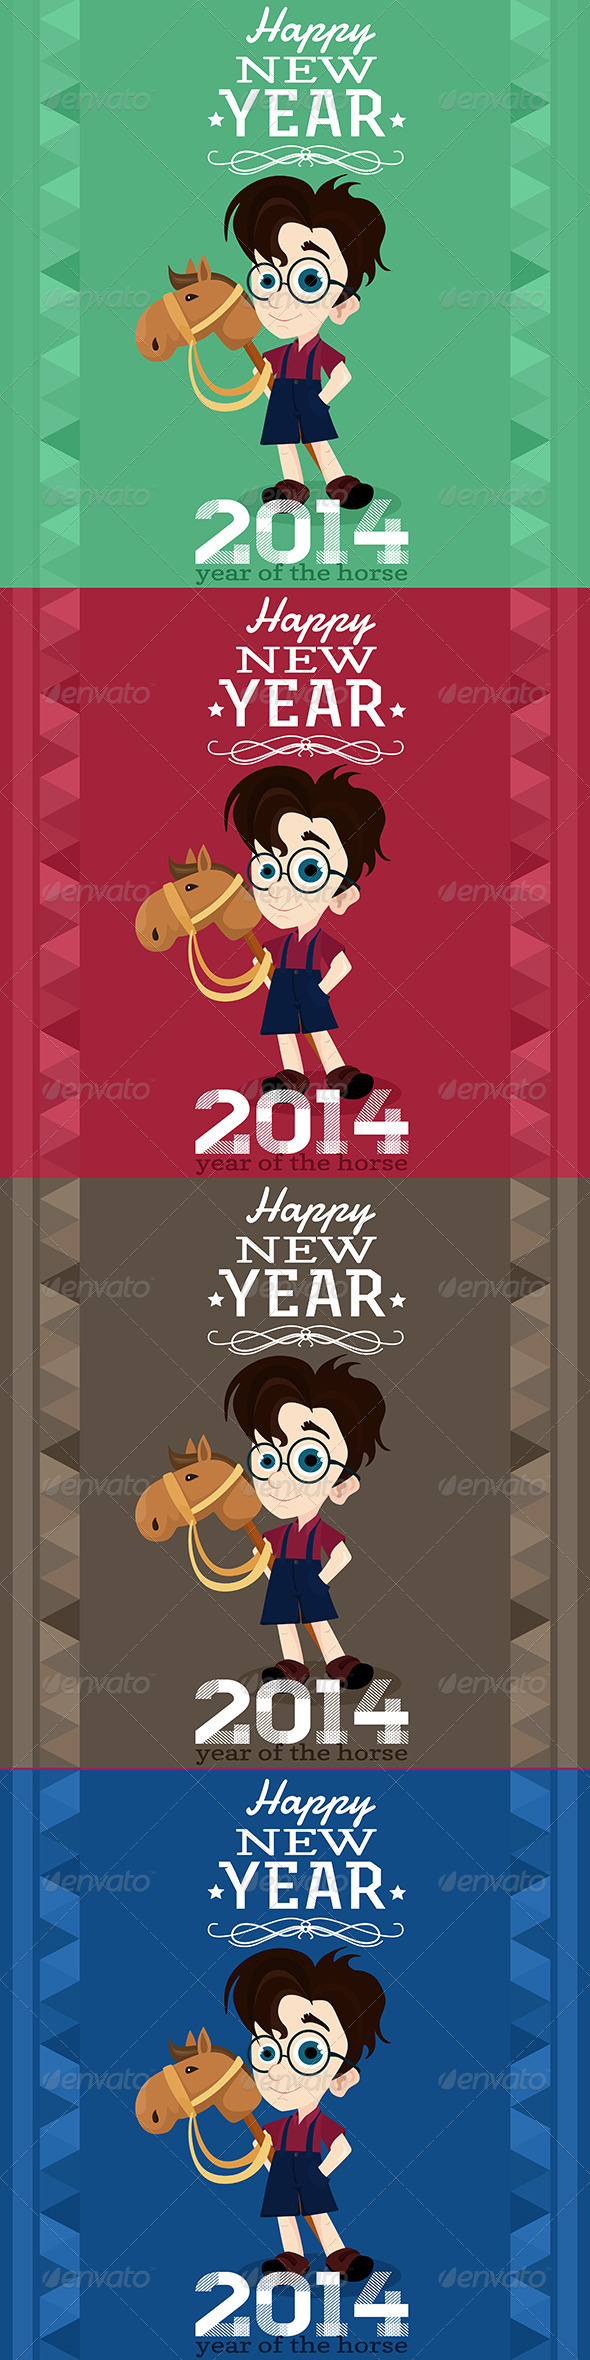 GraphicRiver 2014 Greeting Card Year of the Horse 6484510